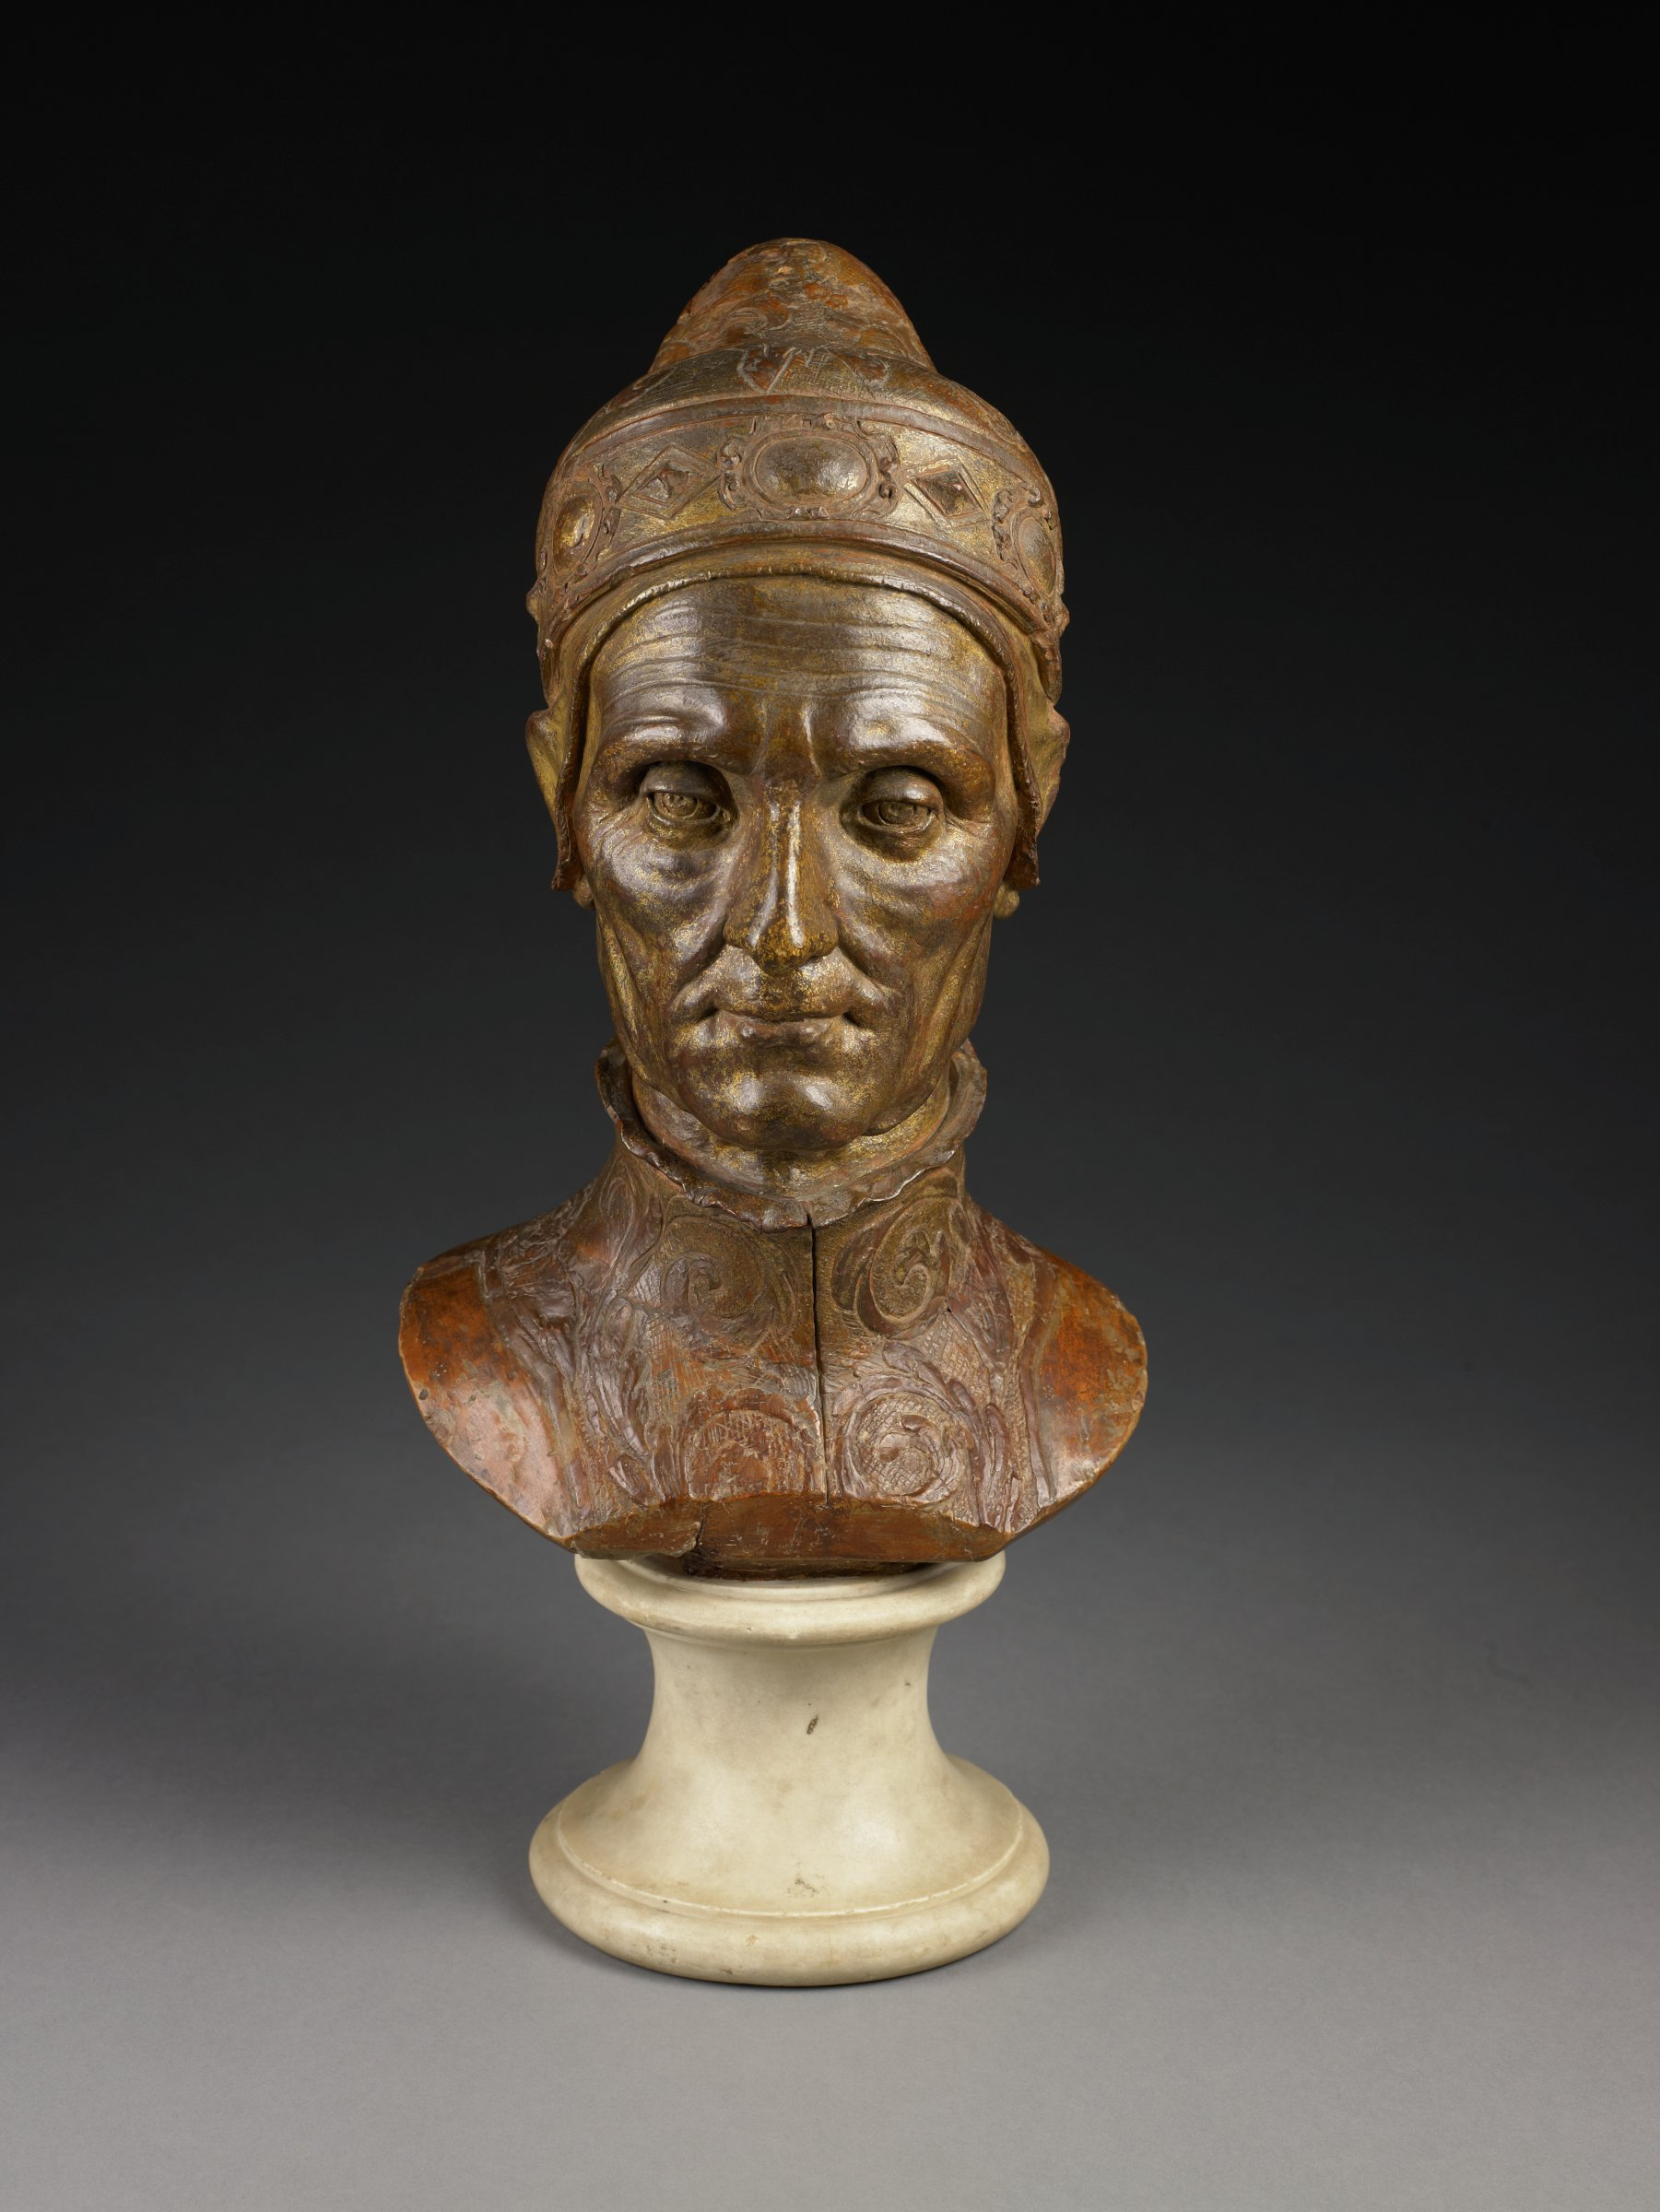 """This terracotta is a nearly life sized bust of the aging sitter. He wears the doge's official """"corno ducale,"""" with its jeweled rim and brocaded bonnet. Beneath the hat is a thin cap, carefully modeled over the ears. His garment is also brocaded, with a crimped collar. The Doge's face is lined with incised wrinkles, and modeled to give the appearance of sagging skin. The cornea and retina are also incised."""